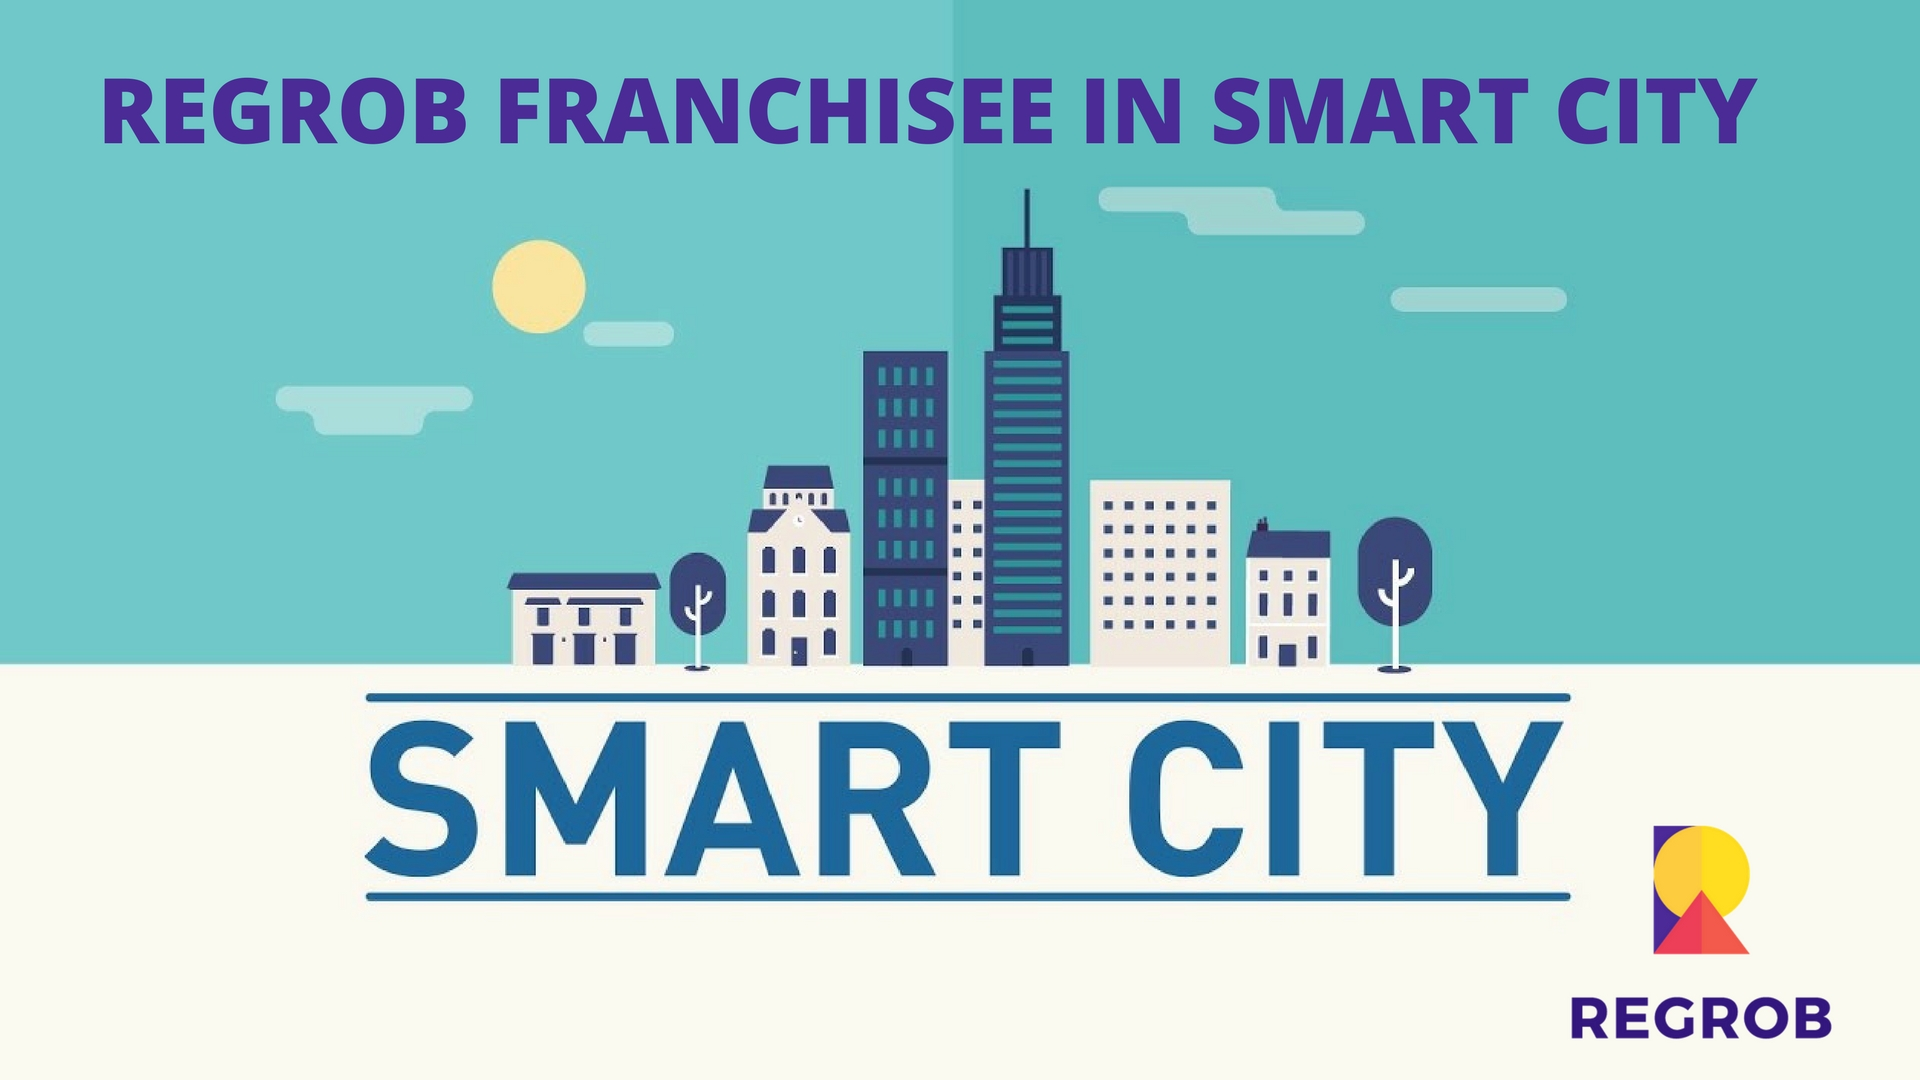 REGROB OPEN FRANCHISEE IN SMART CITY